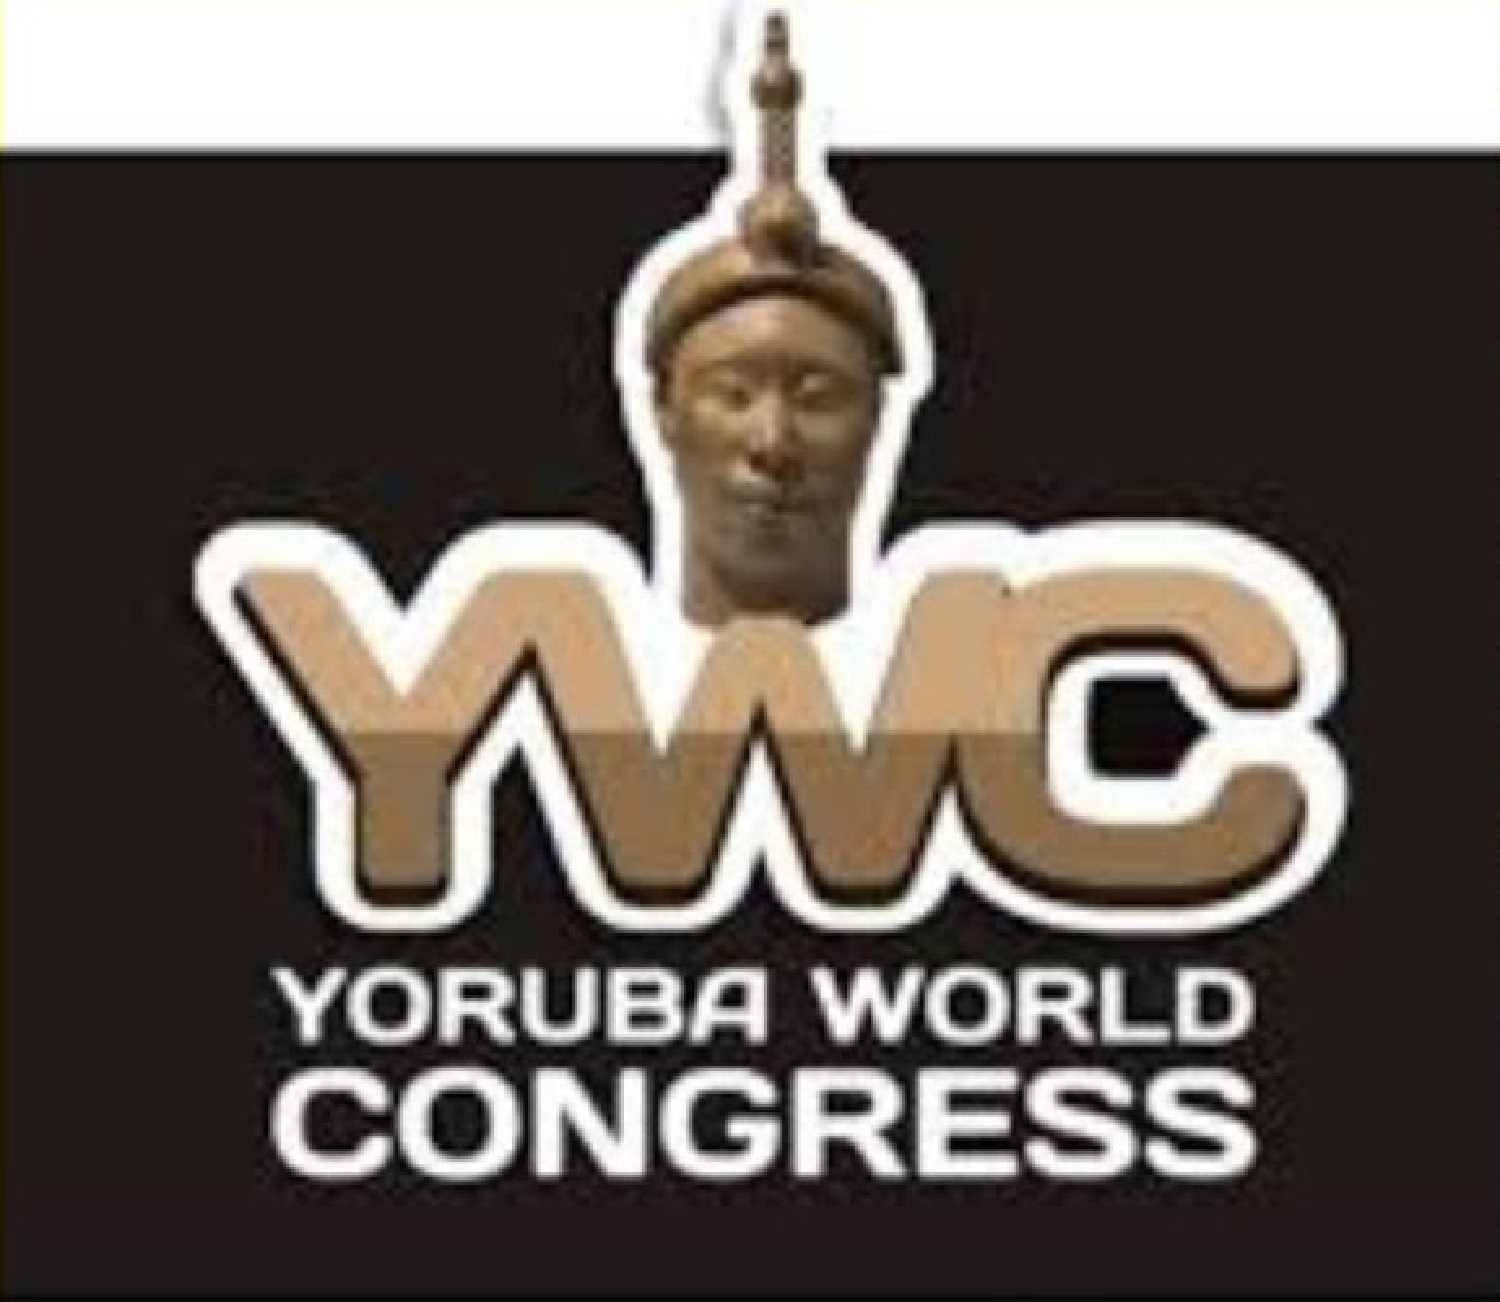 CRACK IN YORUBA WORLD CONGRESS?